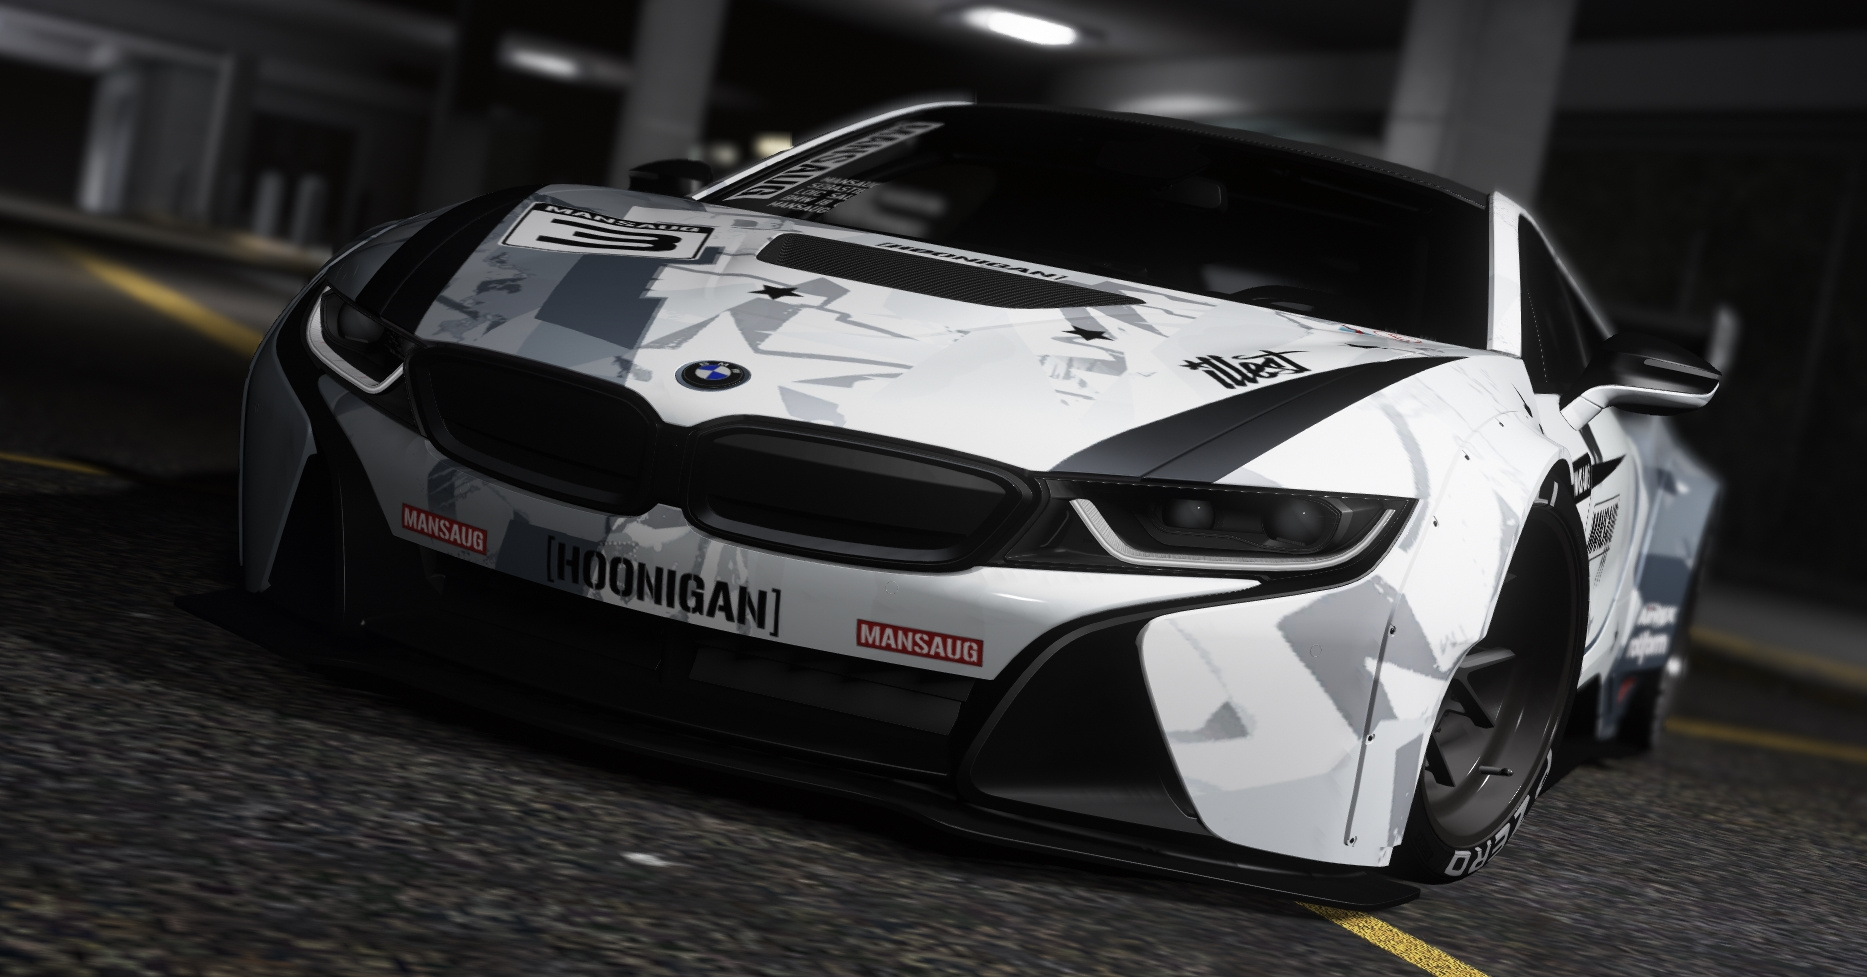 Bmw I8 Coupe Mansaug Replace Addon Template Multi Livery